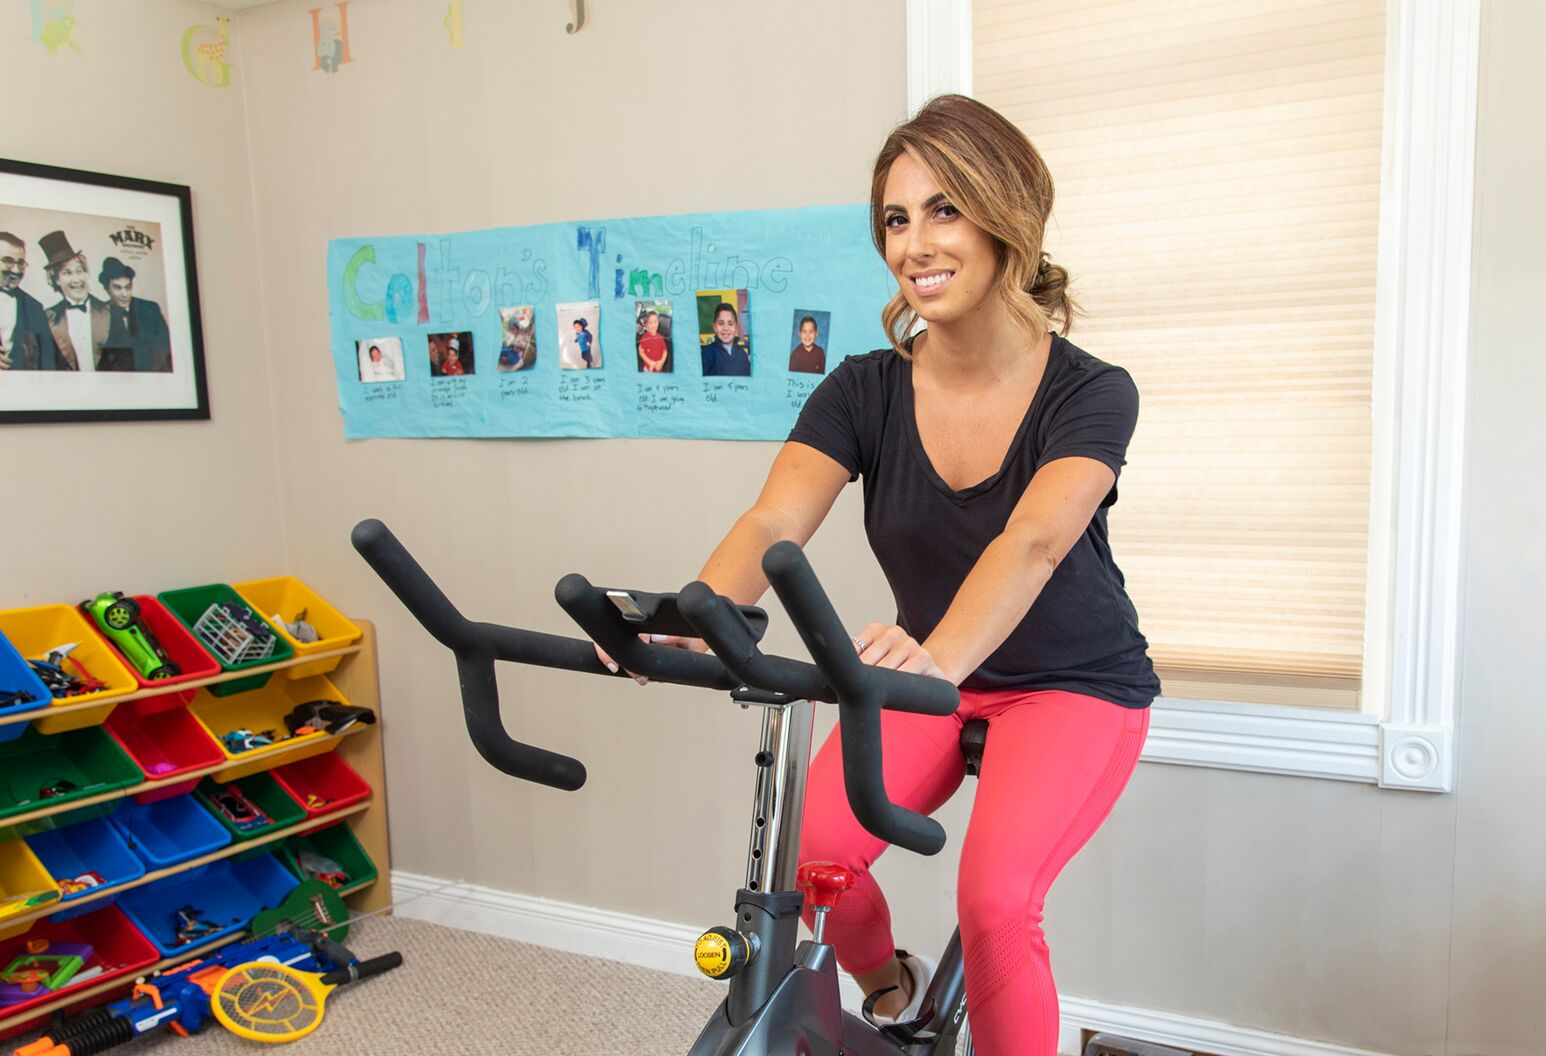 Woman in her late 20s in pink tights and black shirt on an exercise bike.